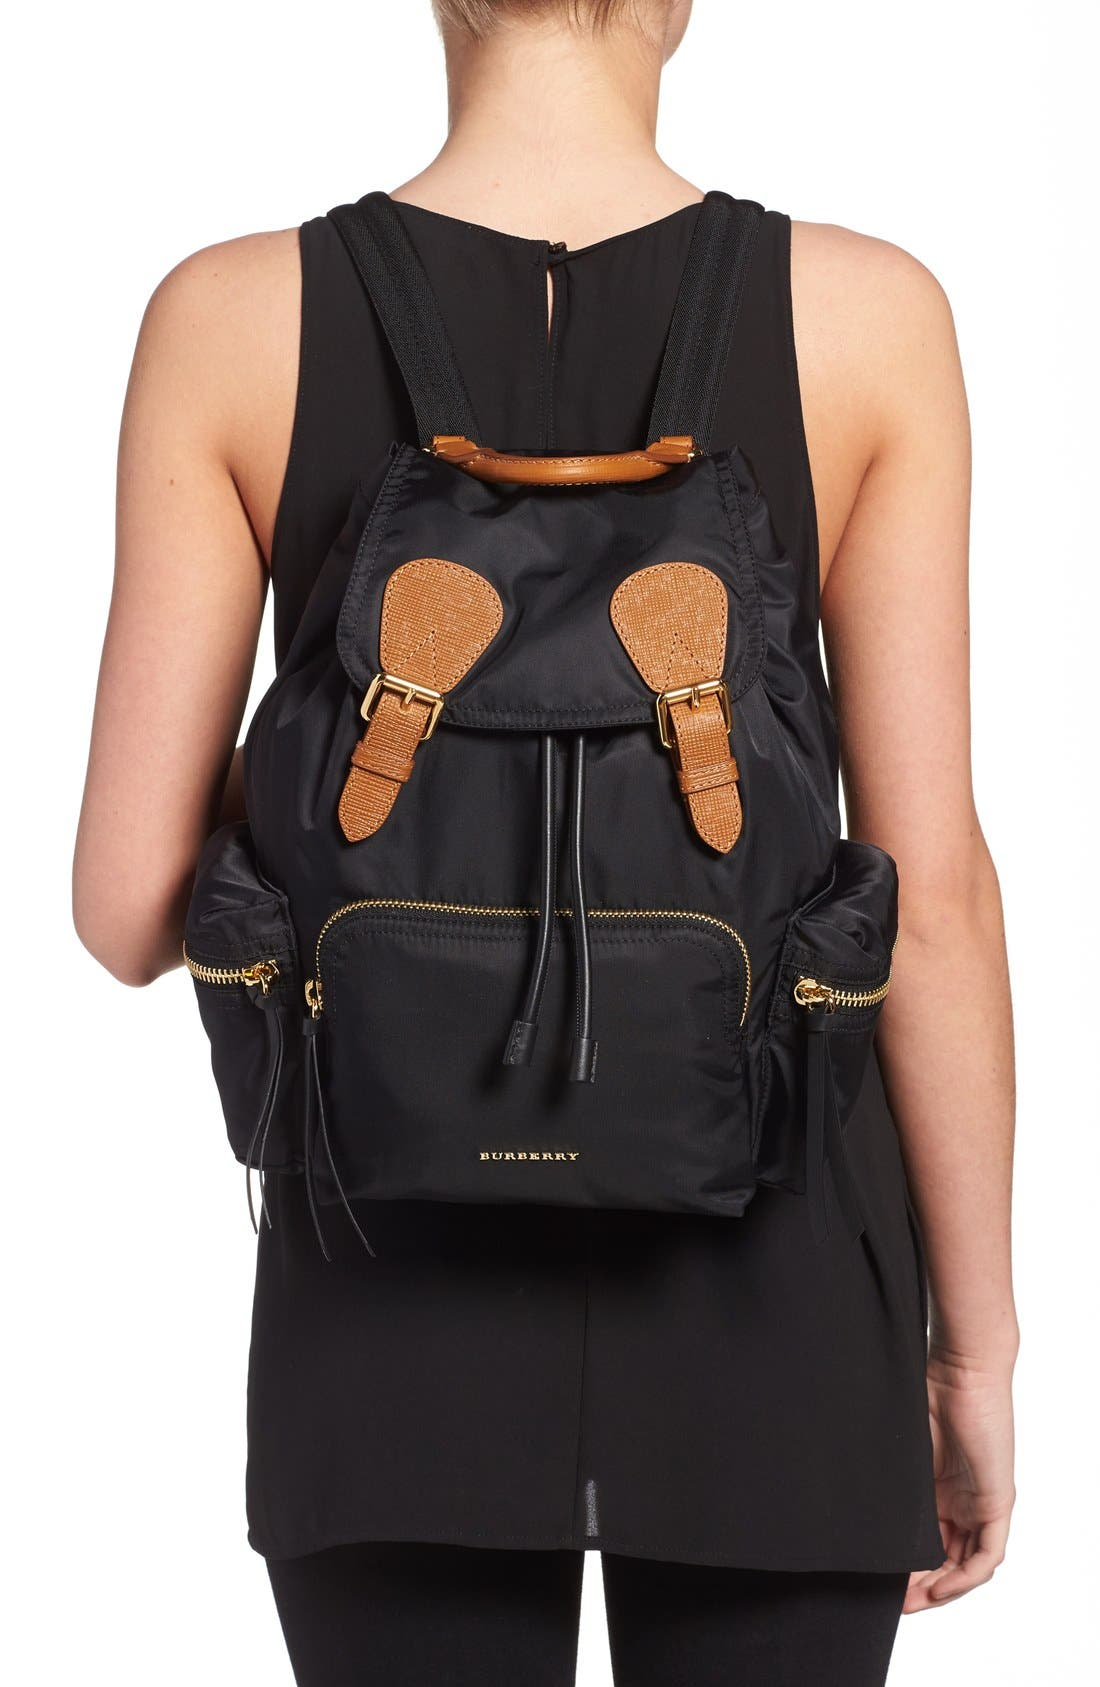 'Medium Runway Rucksack' Nylon Backpack,                             Alternate thumbnail 2, color,                             Black